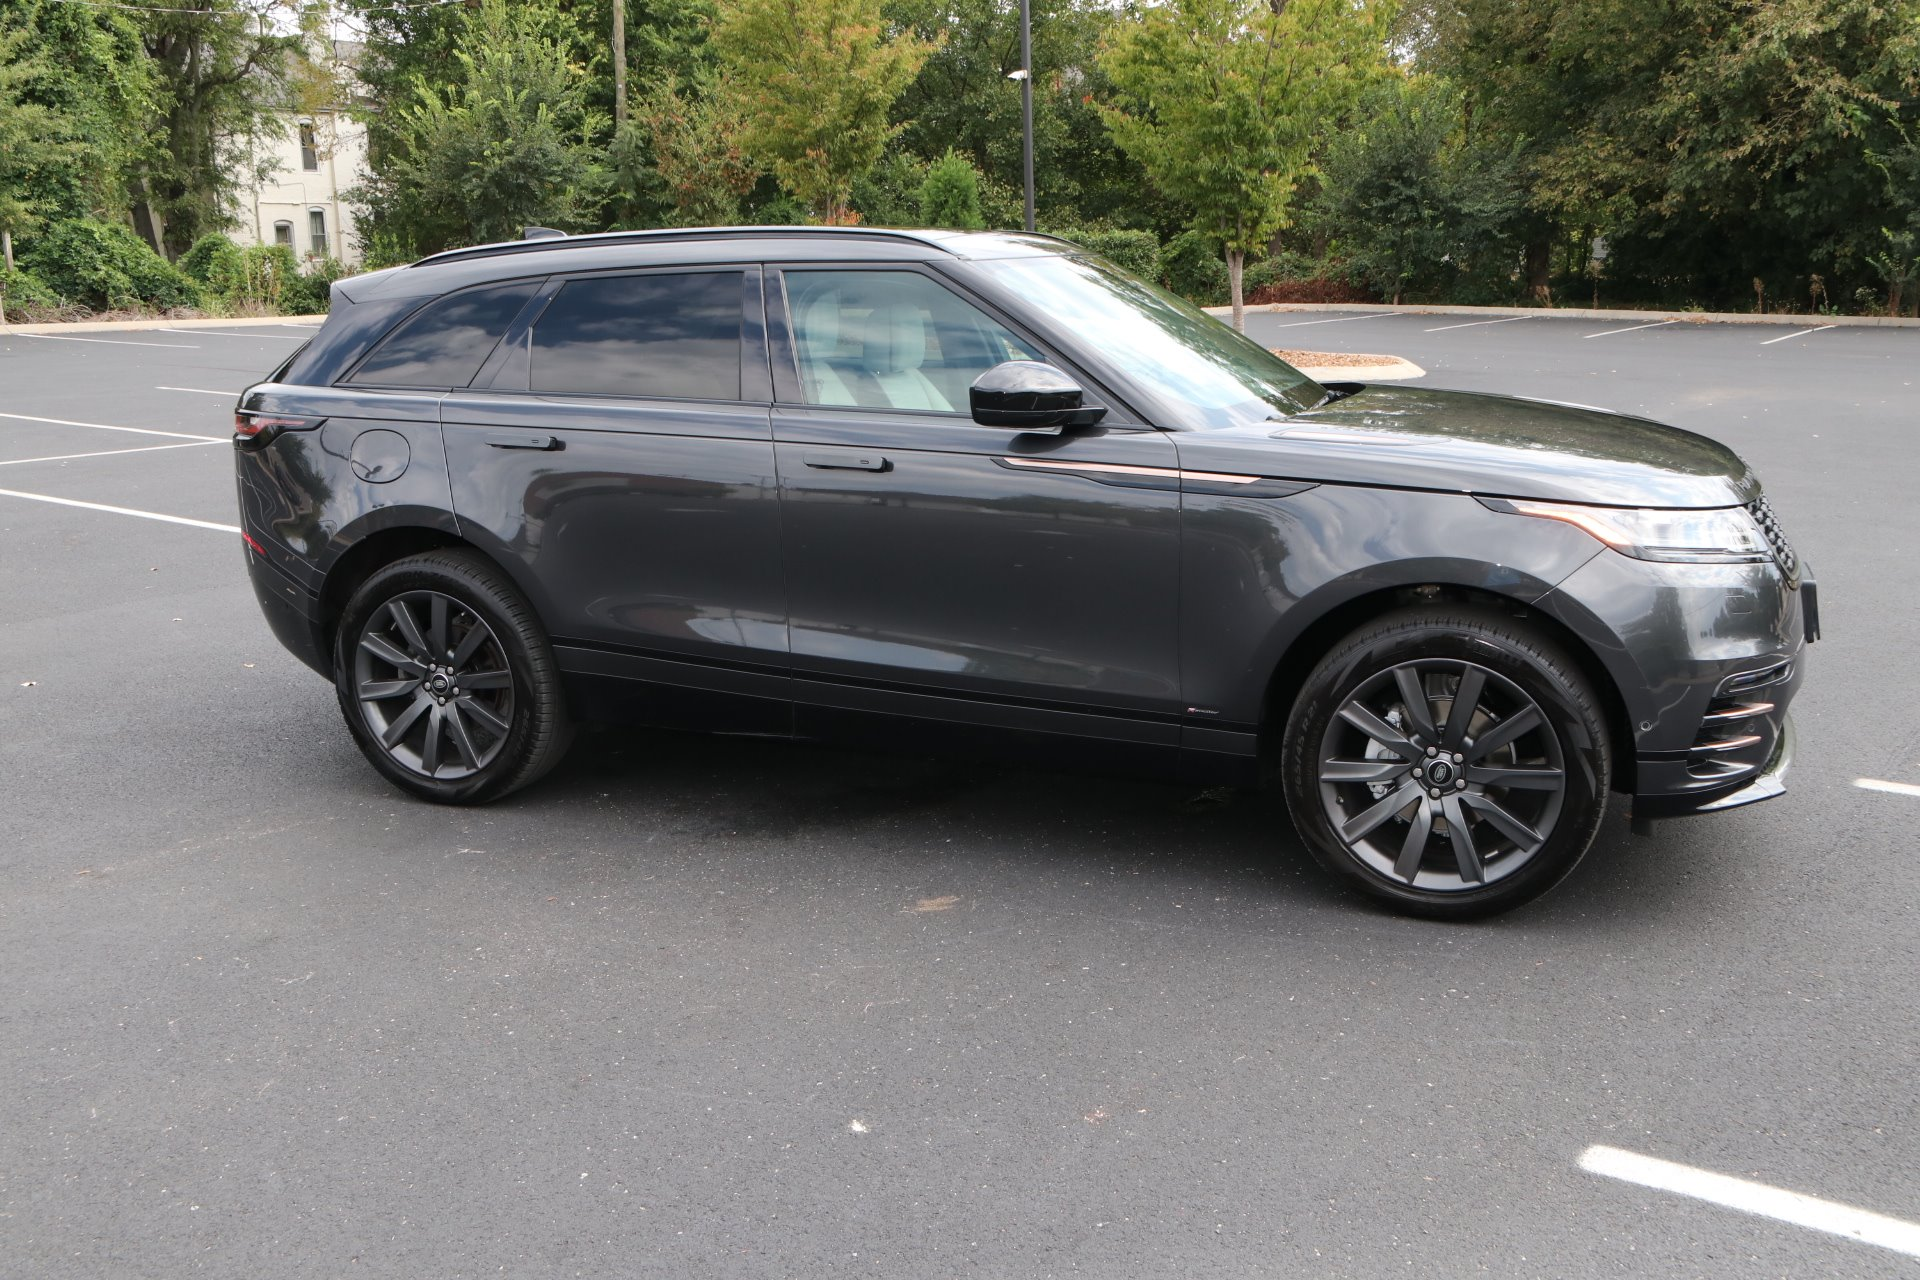 Used 2018 Land Rover Range Rover Velar P250 R-Dynamic HSE for sale Sold at Auto Collection in Murfreesboro TN 37130 1